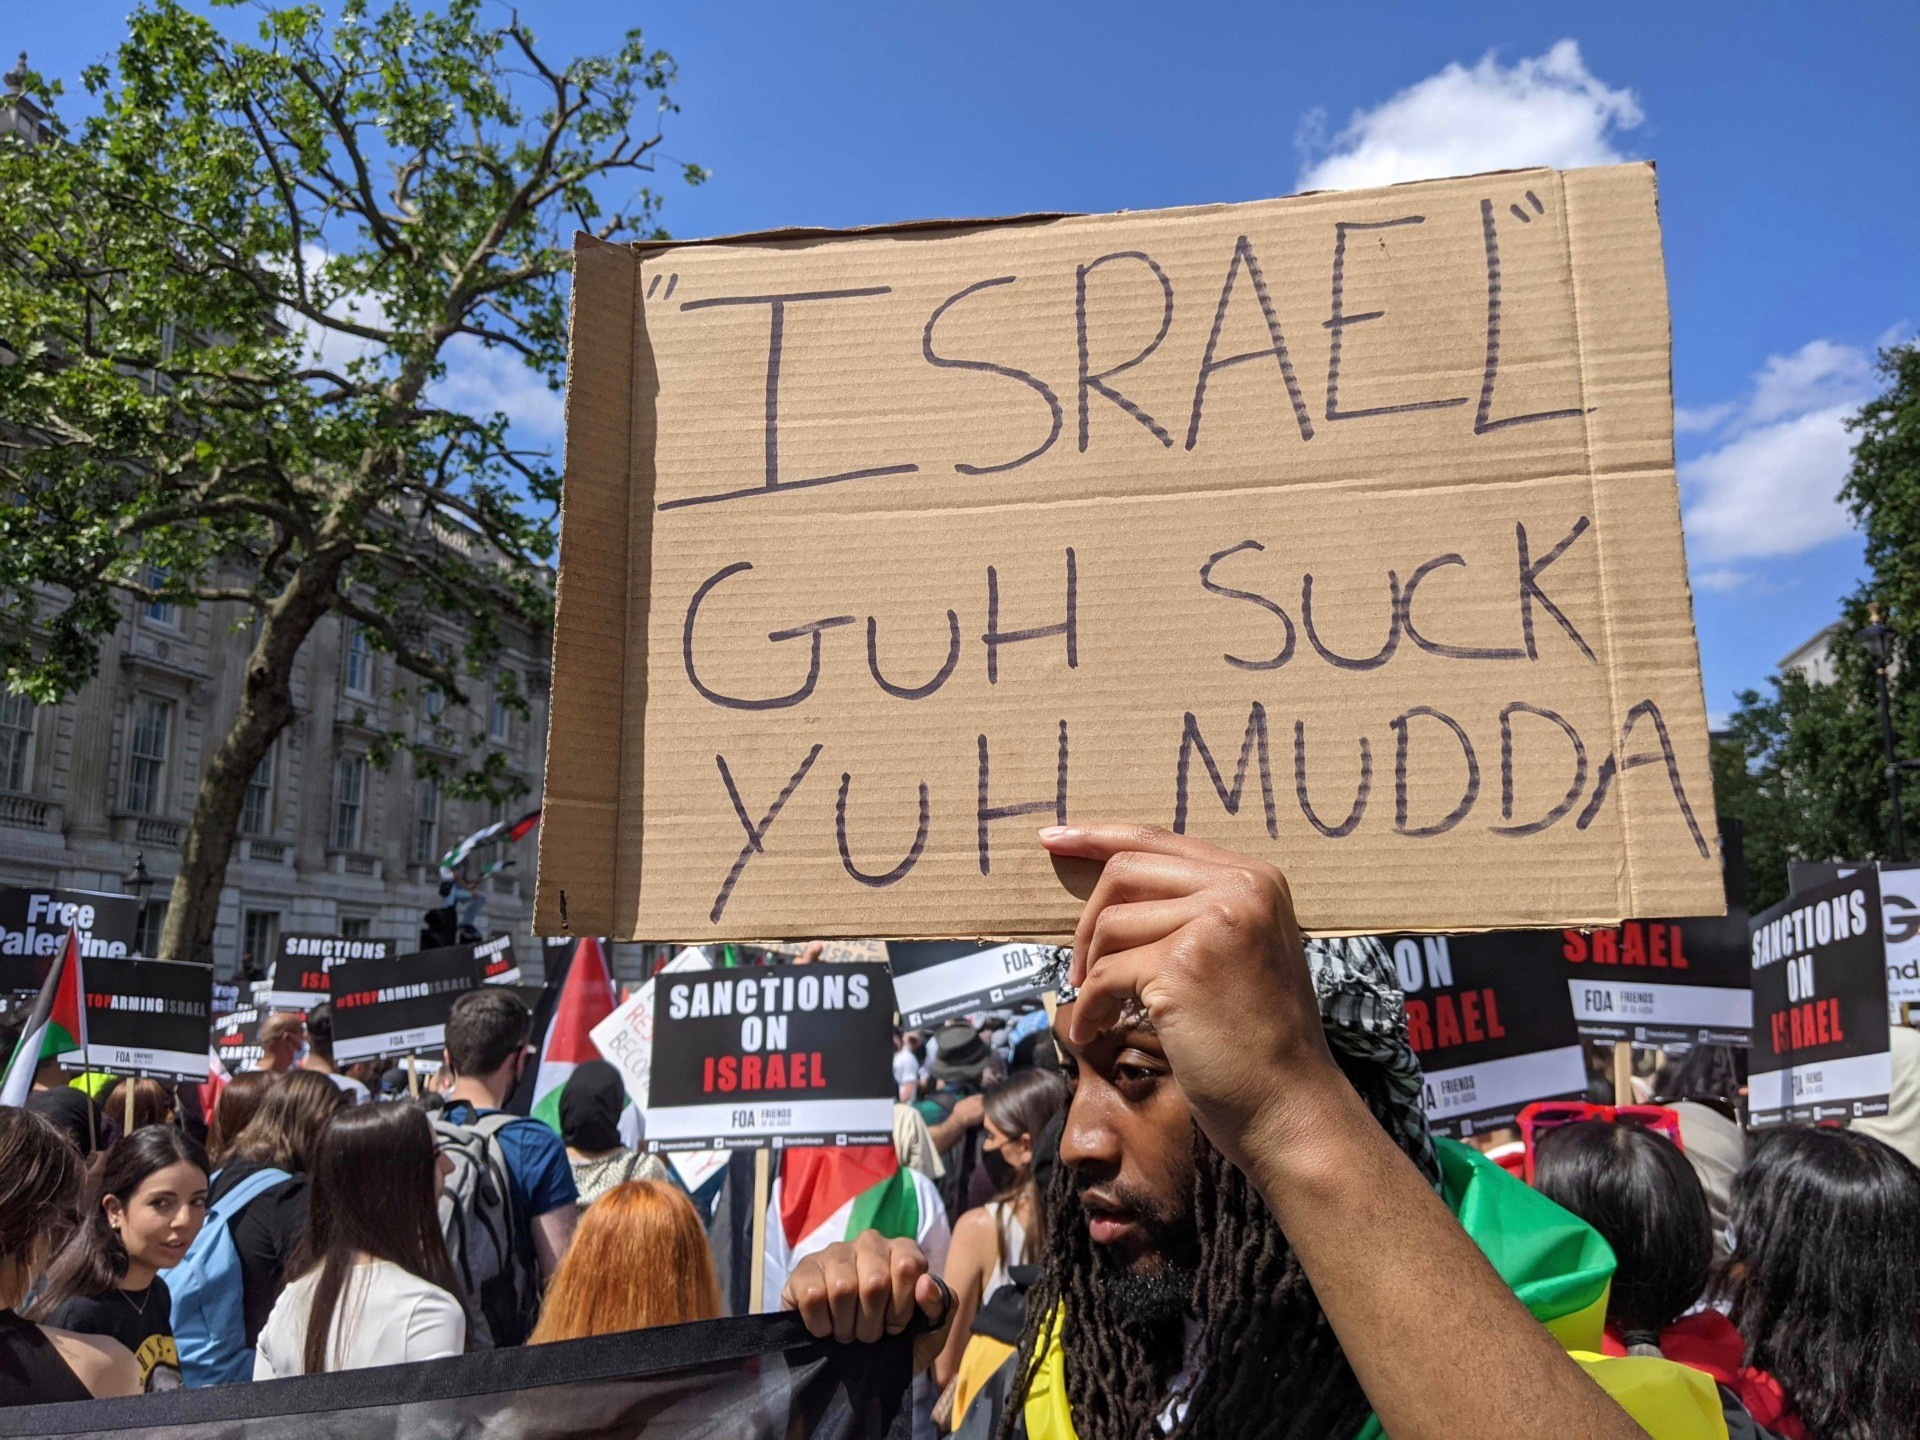 """A pro-Palestine protester holds a placard reading """"Israel Guh Suck Yuh Mudda"""" at a Downing Street protest. June 12th, 2021. Kurt Zindulka, Breitbart News"""